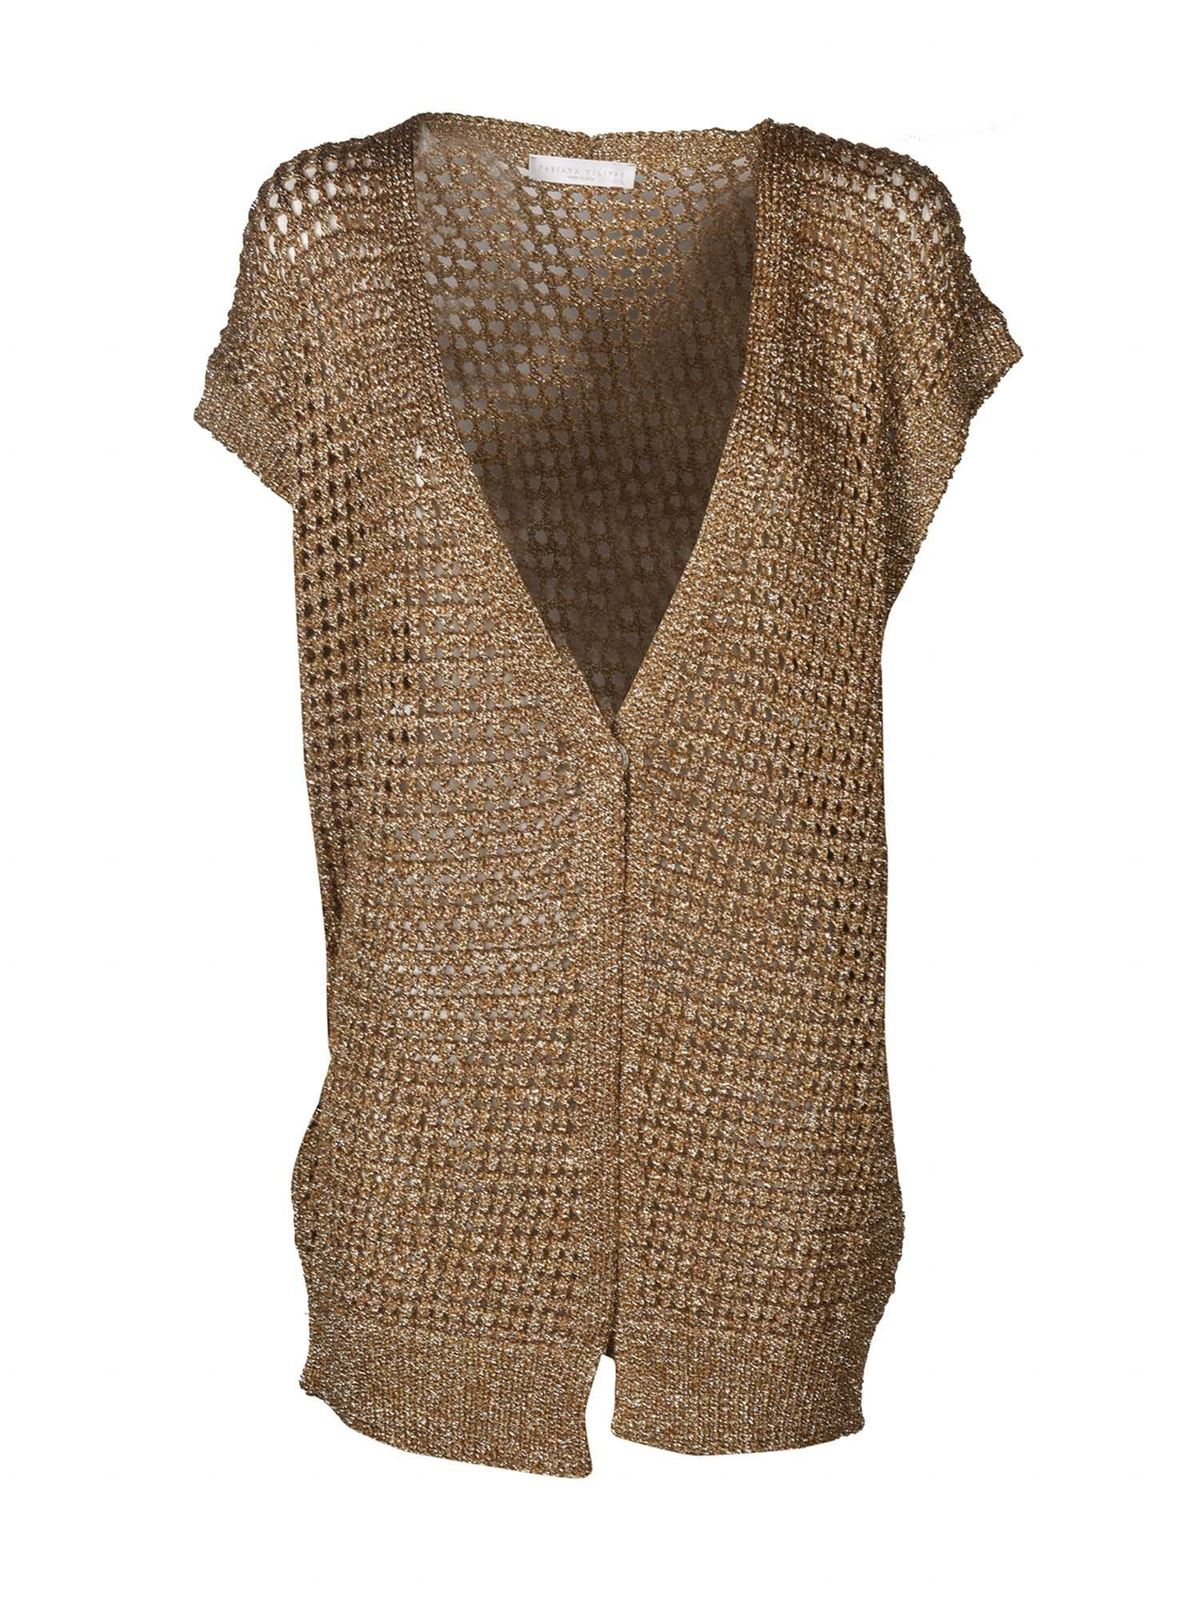 Fabiana Filippi DRILLED CARDIGAN IN BRONZE COLOR